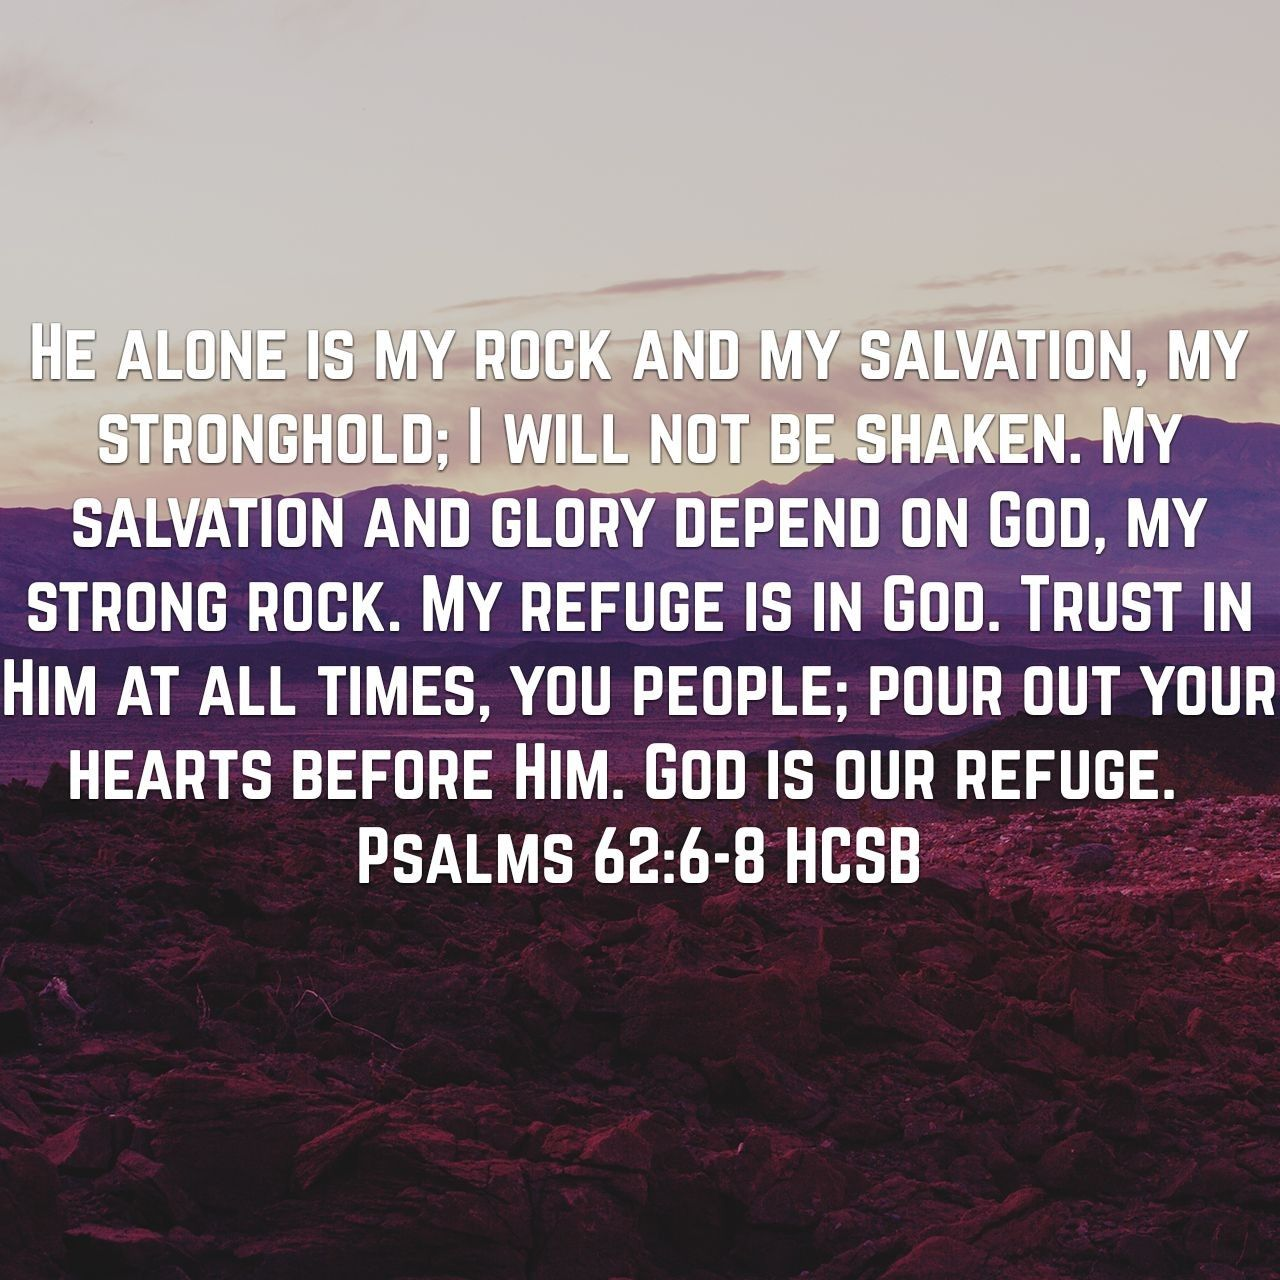 Best Bible Quotes About Love Pinkaren Dunford On Bible Verses  Pinterest  Verses And Bible